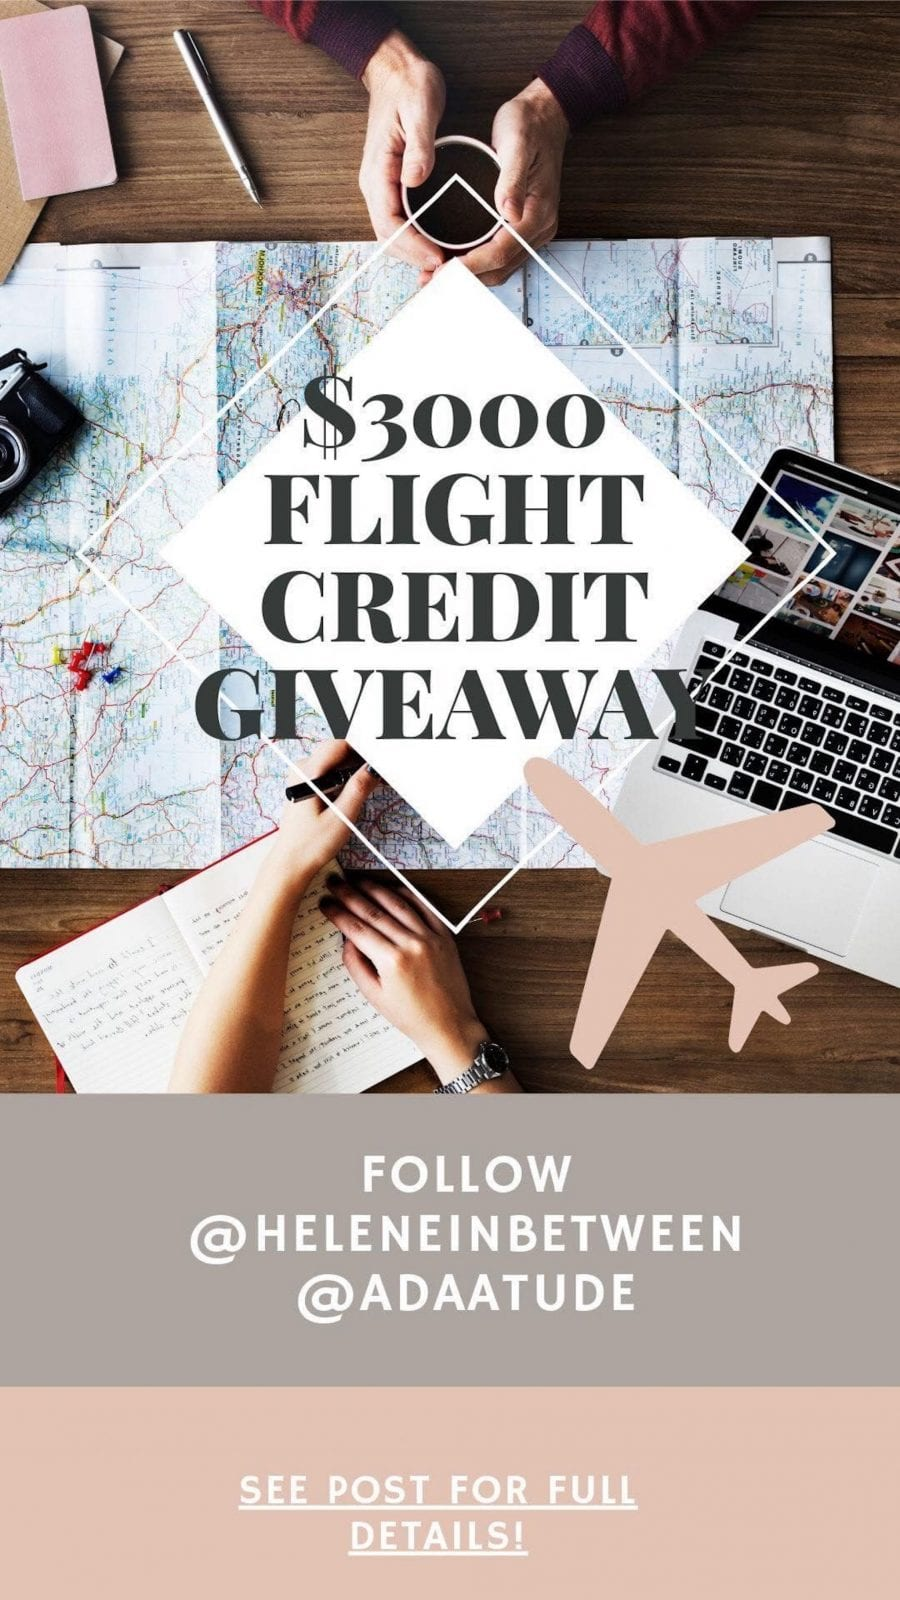 This is an image of the $3,000 flight credit giveaway.